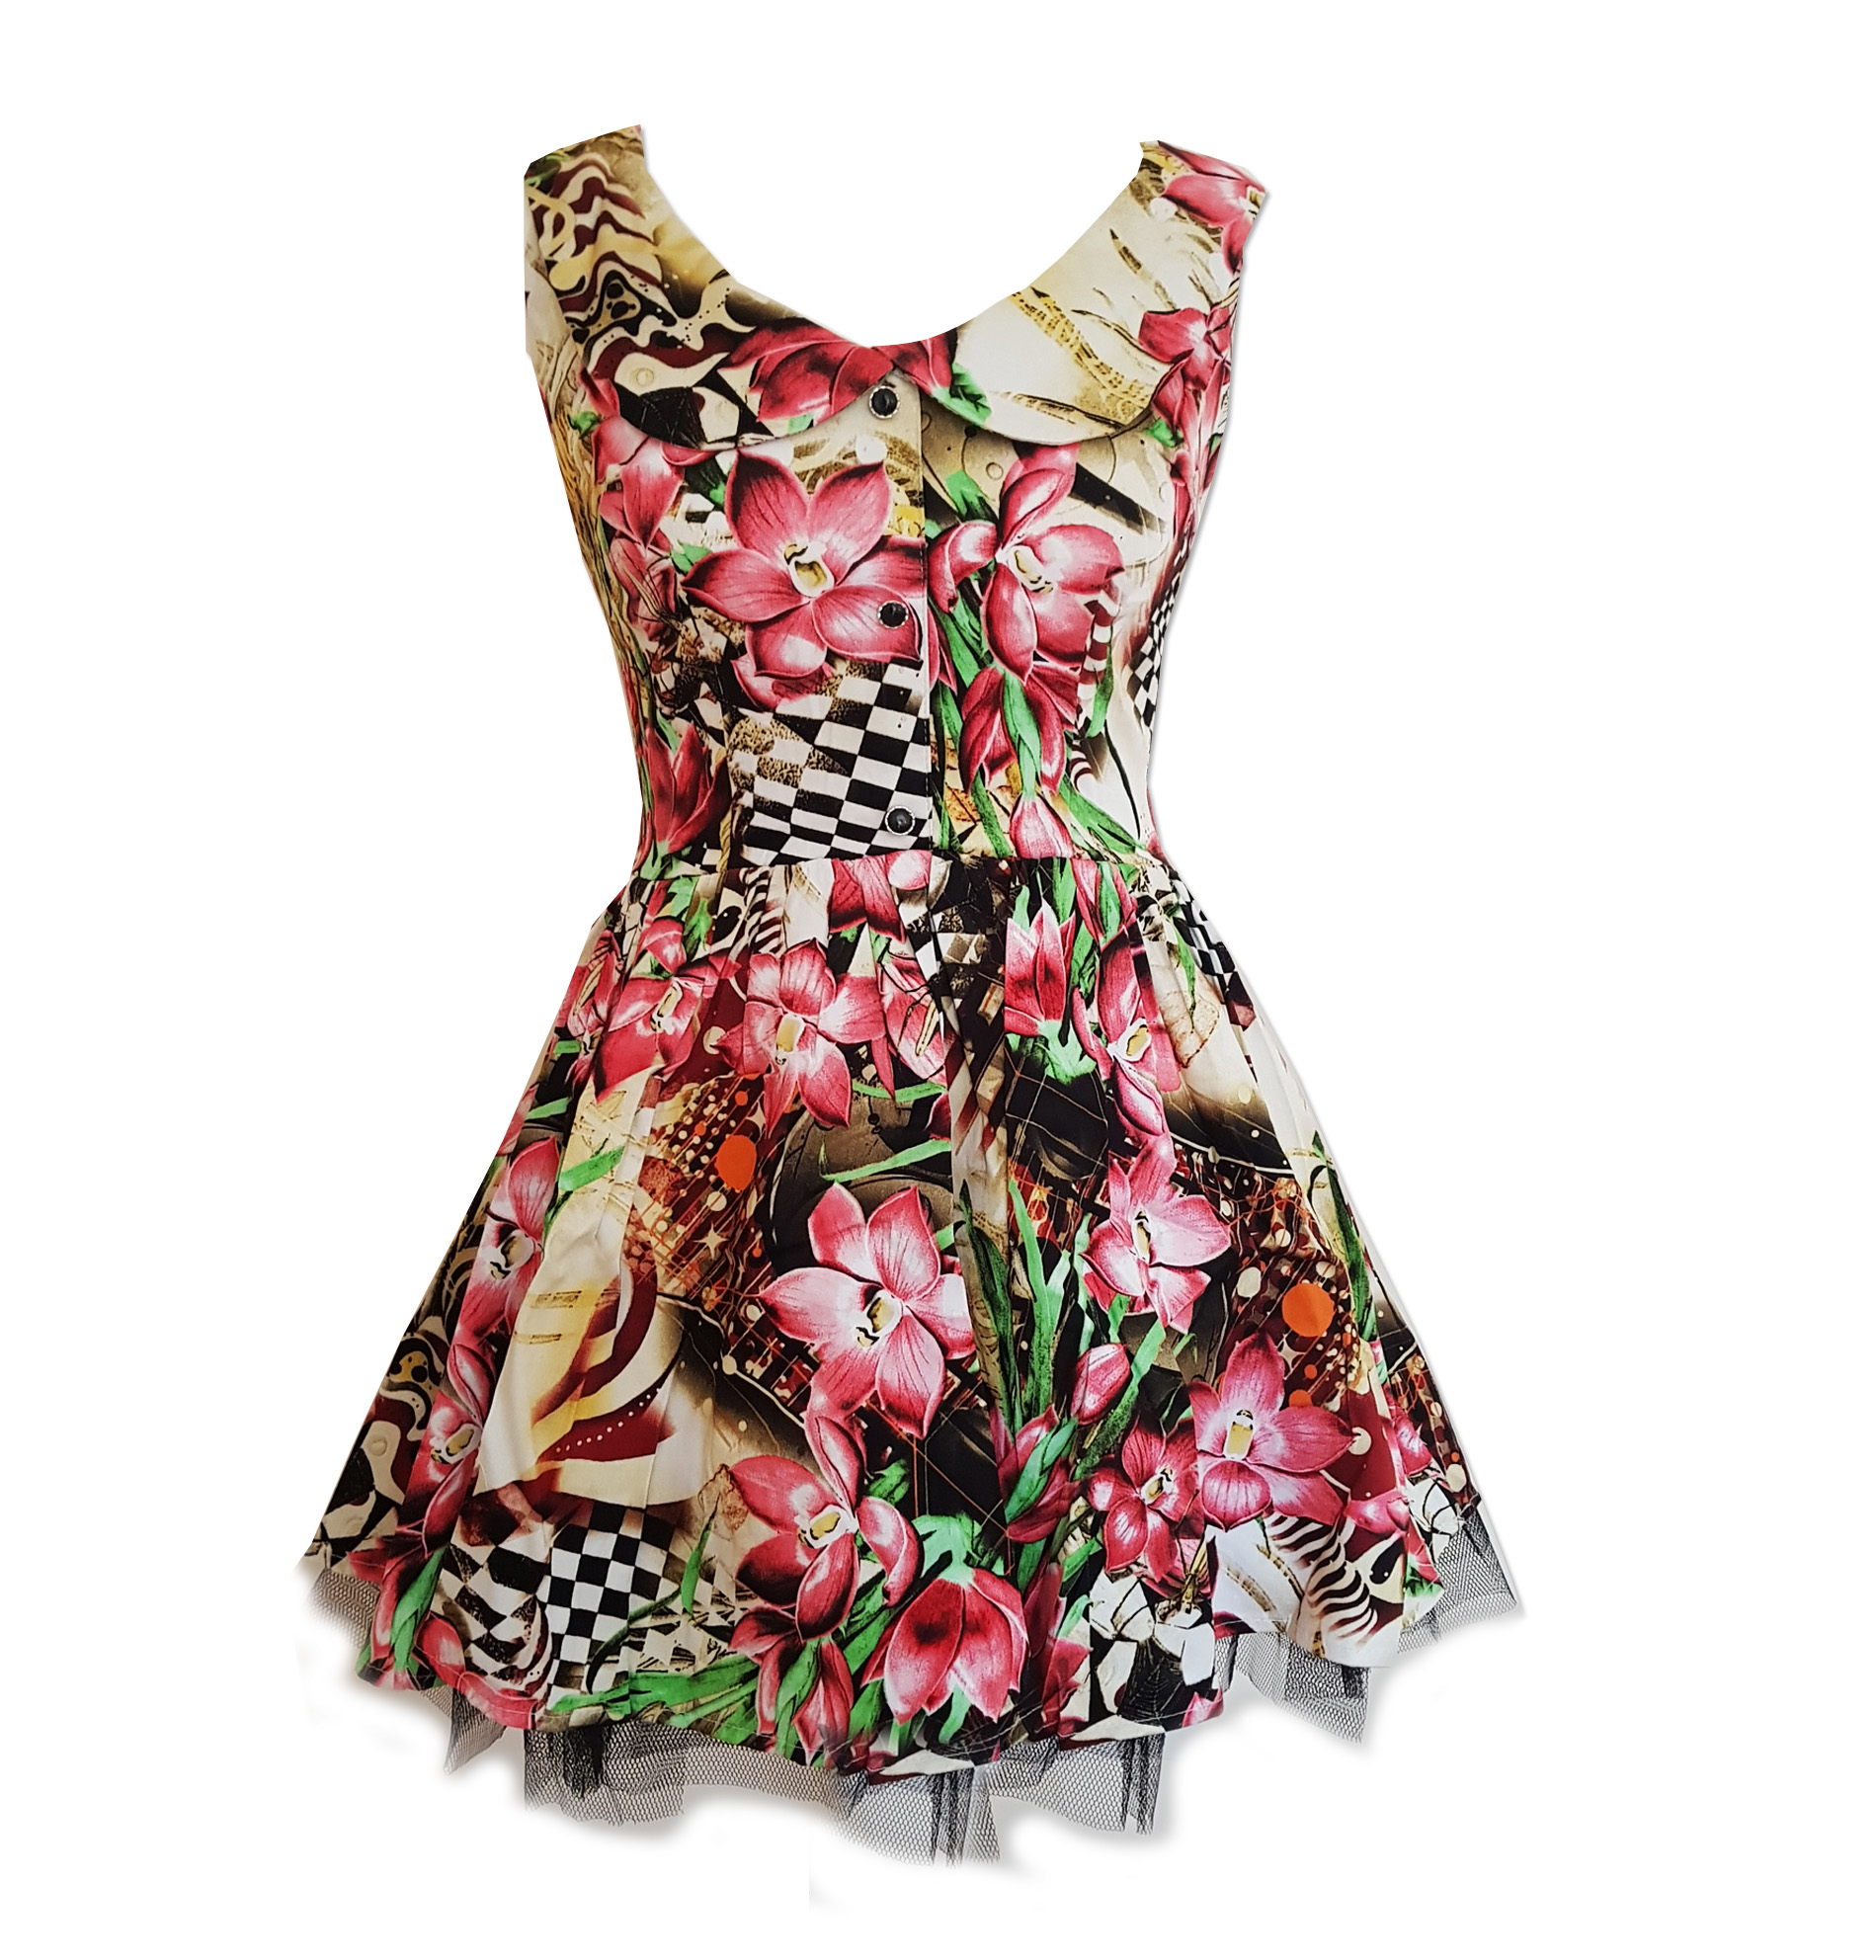 H-amp-R-Hearts-amp-Roses-London-Pink-Mini-Dress-039-Lily-Checkerboard-039-Flowers-All-Sizes thumbnail 19